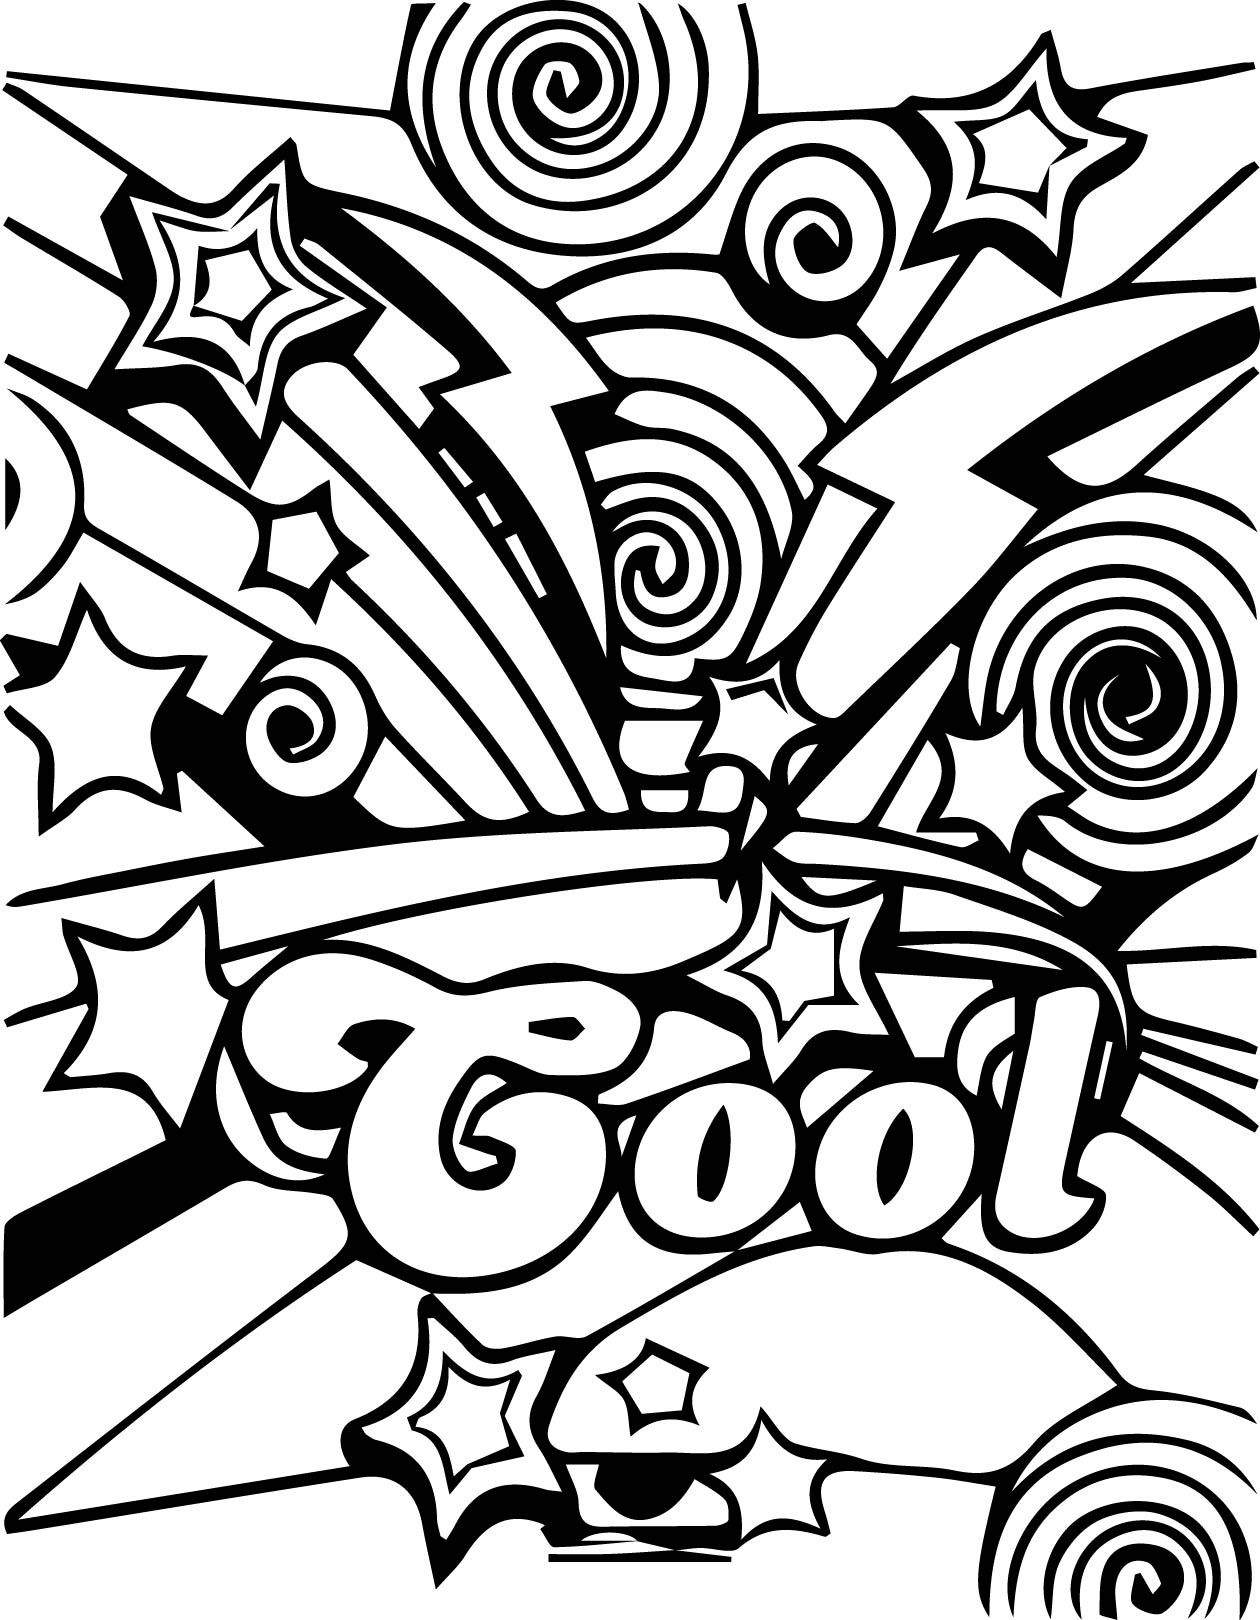 coloring pages cool designs cool coloring pages coloringrocks coloring cool pages designs